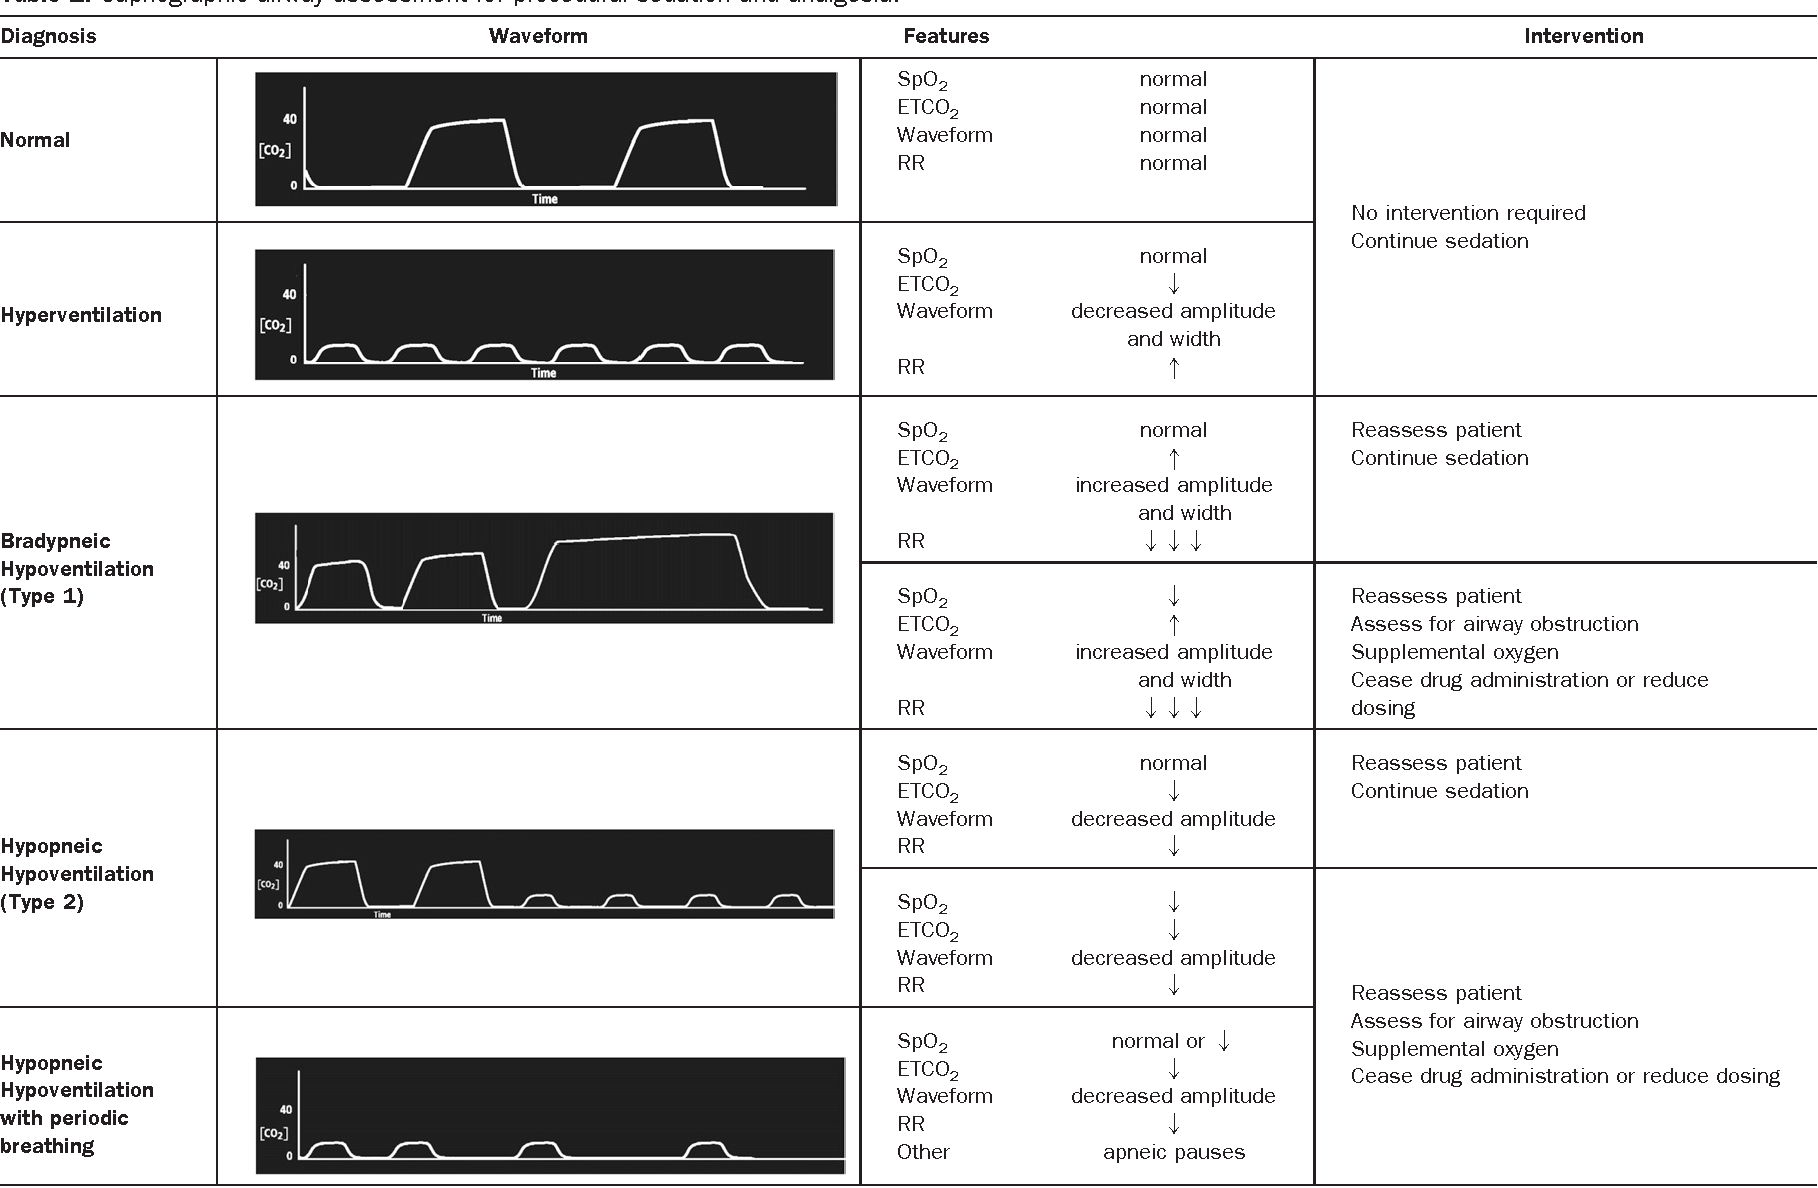 Capnography for procedural sedation and analgesia in the